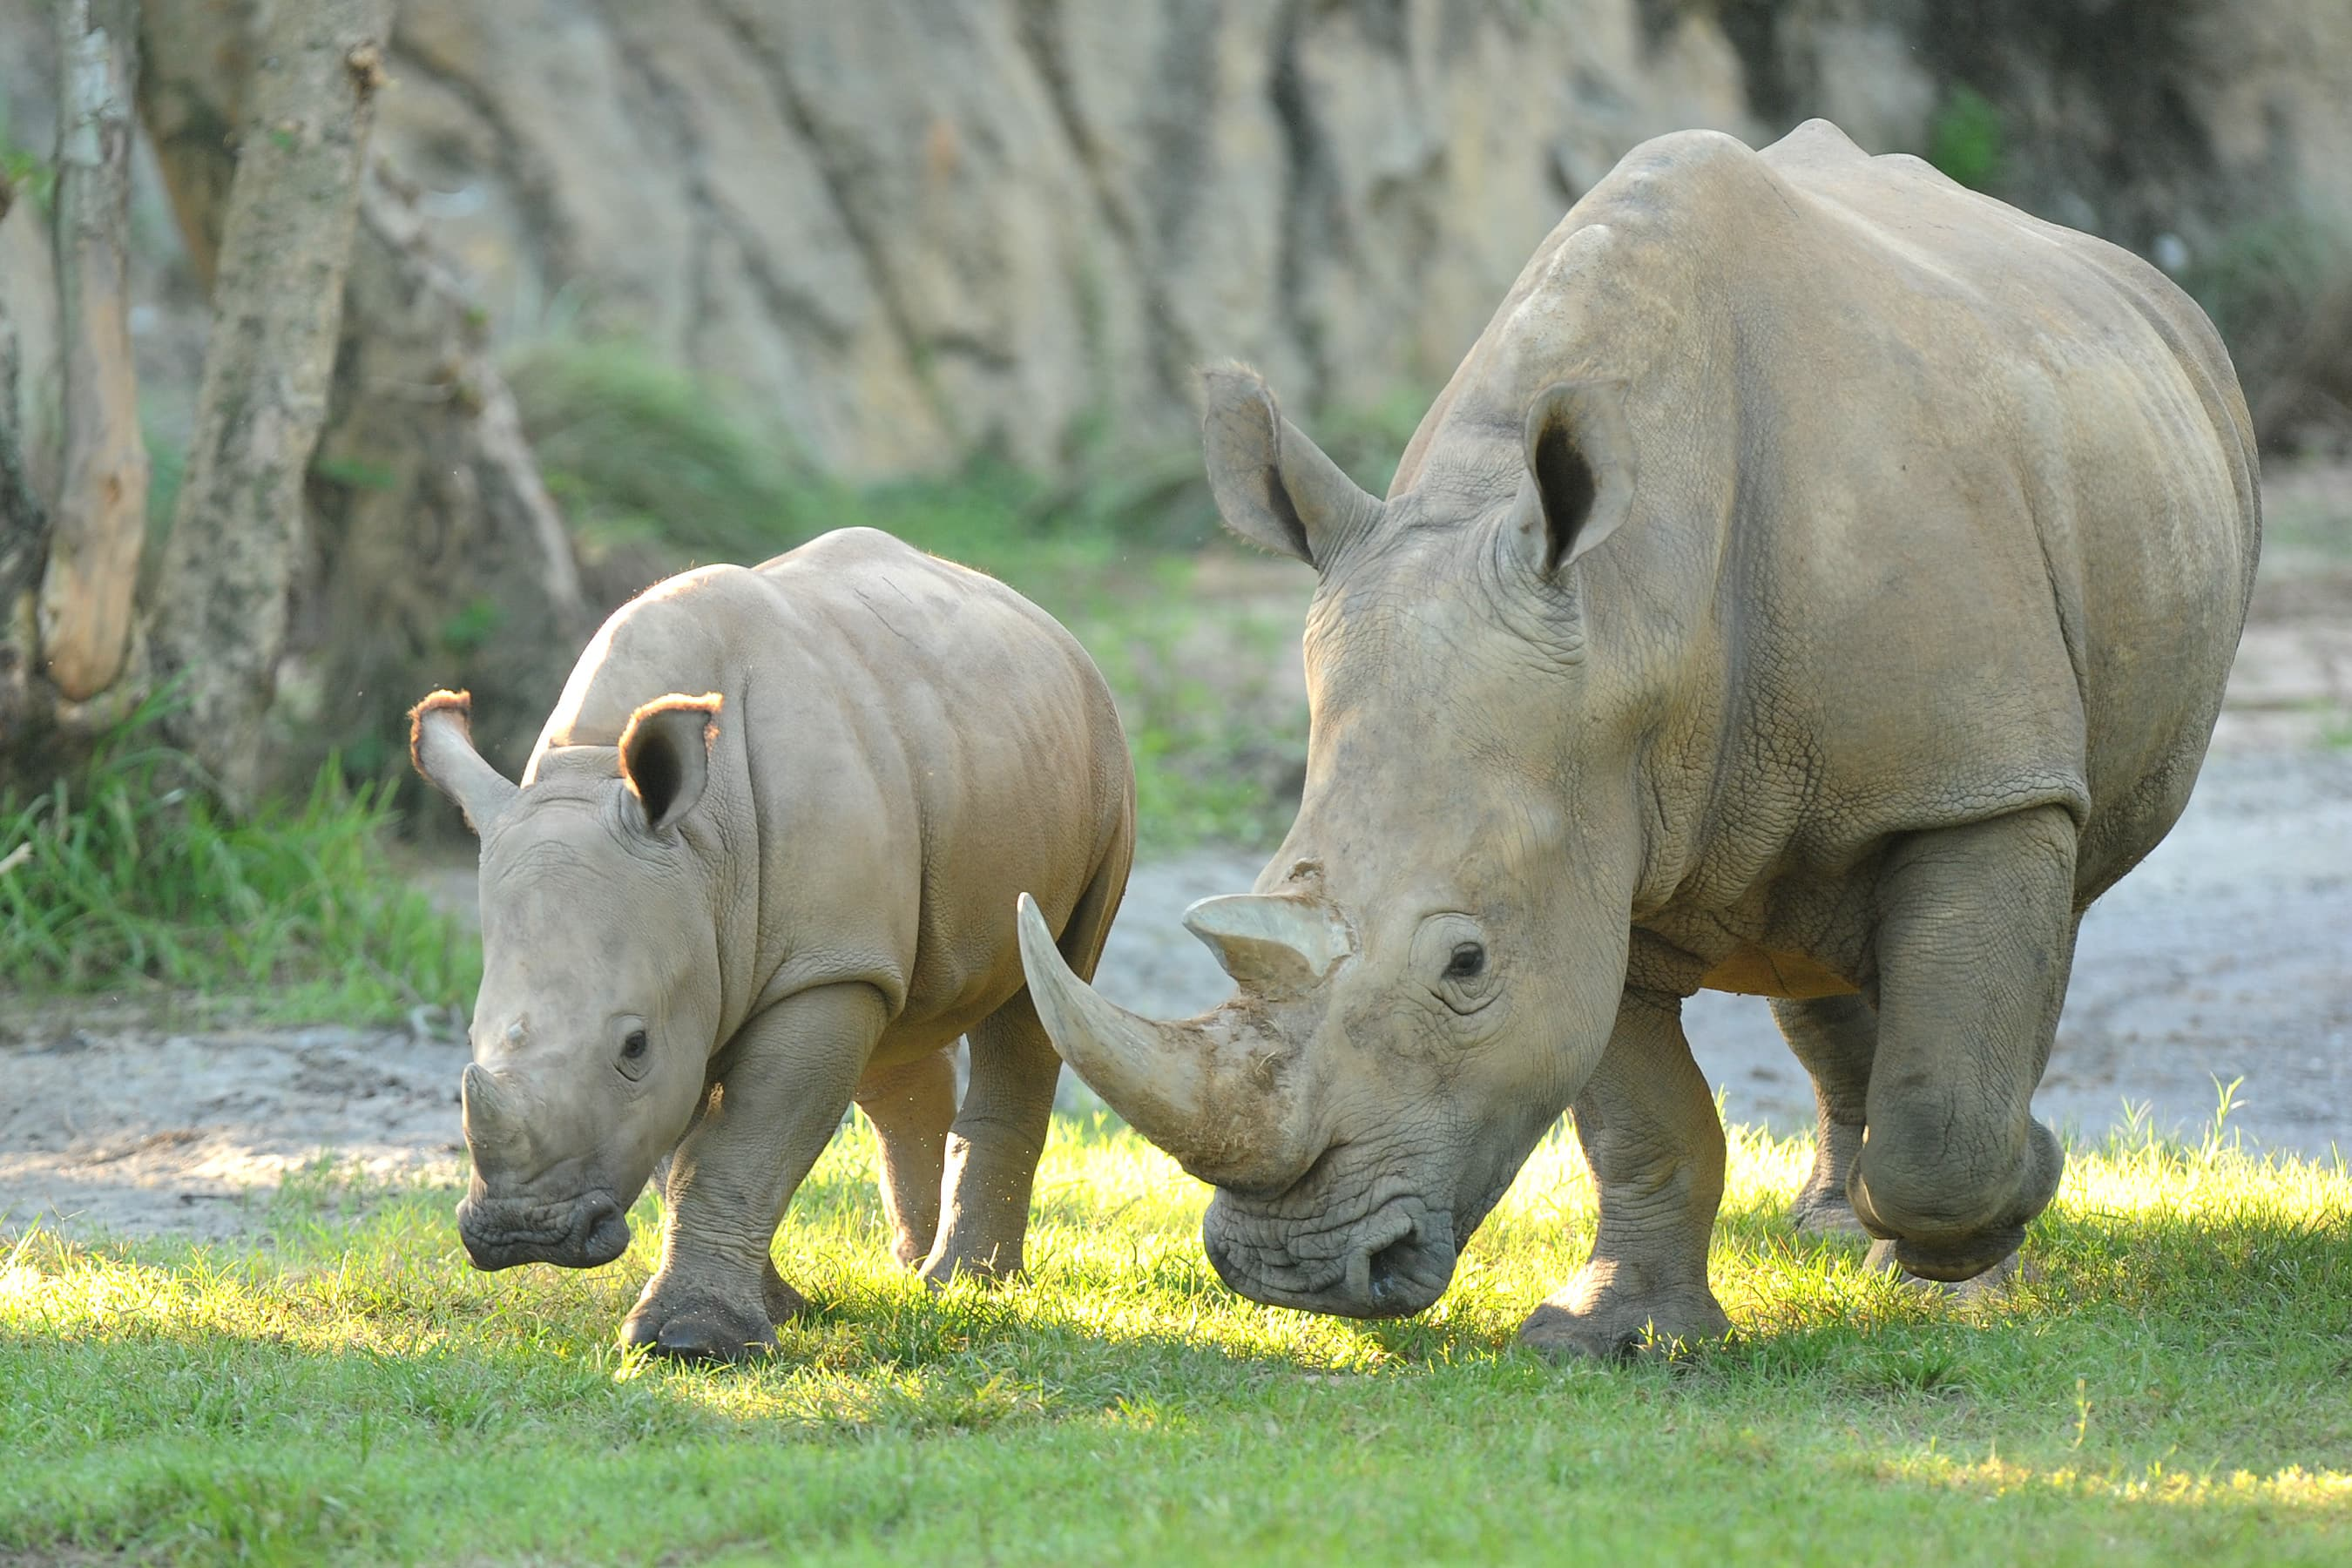 Wildlife Wednesdays Fun Facts Shared On Rhino Day At